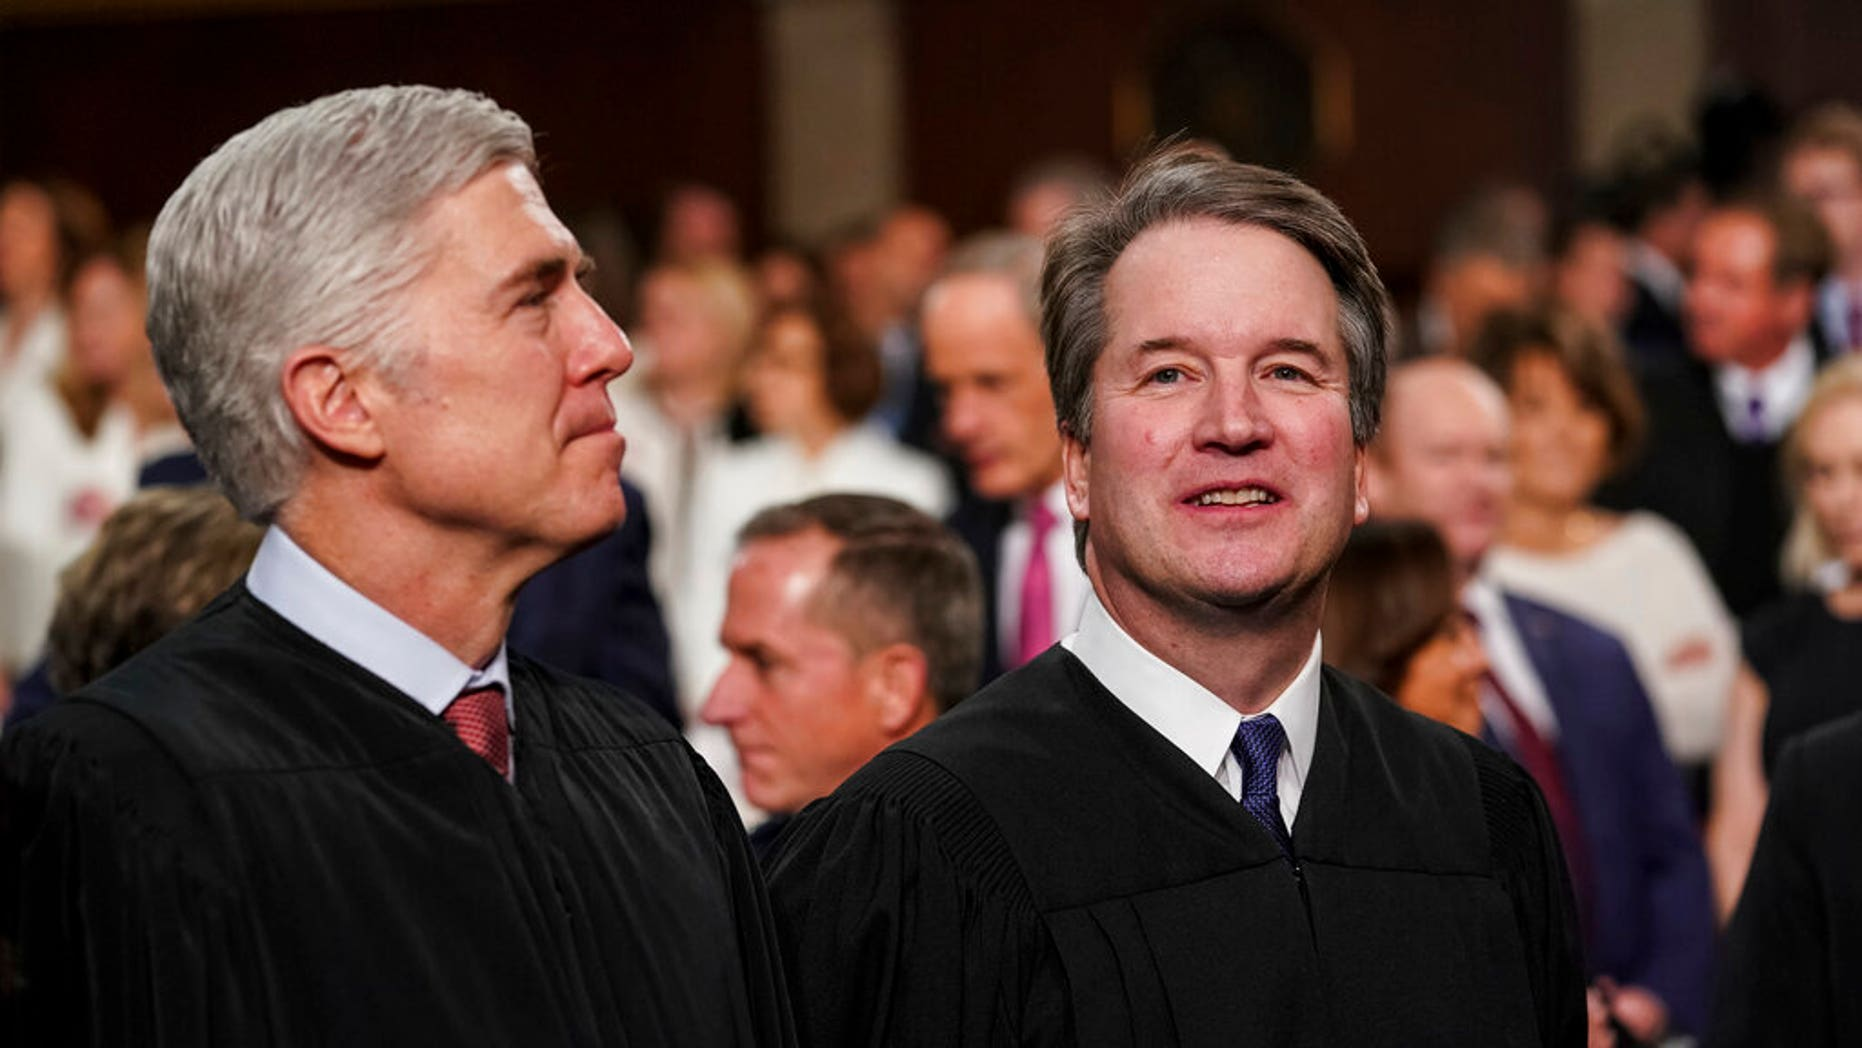 Supreme Court judges Neil Gorsuch, left, and Brett Kavanaugh watch as President Trump arrives to deliver his speech on the state of union ahead of a joint session of Congress at the Capitol in Washington. (Associated Press)